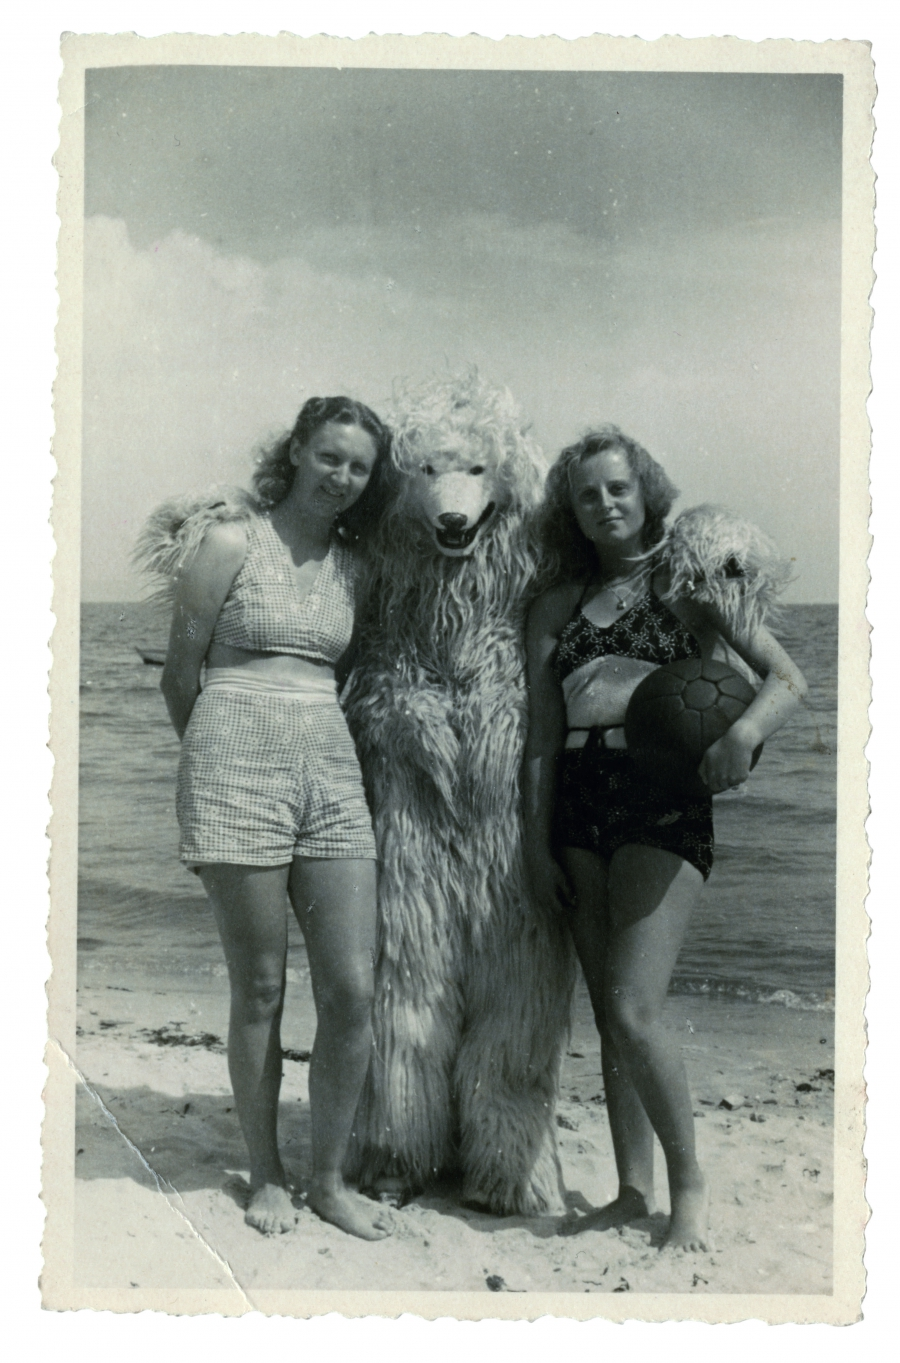 A polar bear on the beach with his arms around two bathing beauties.